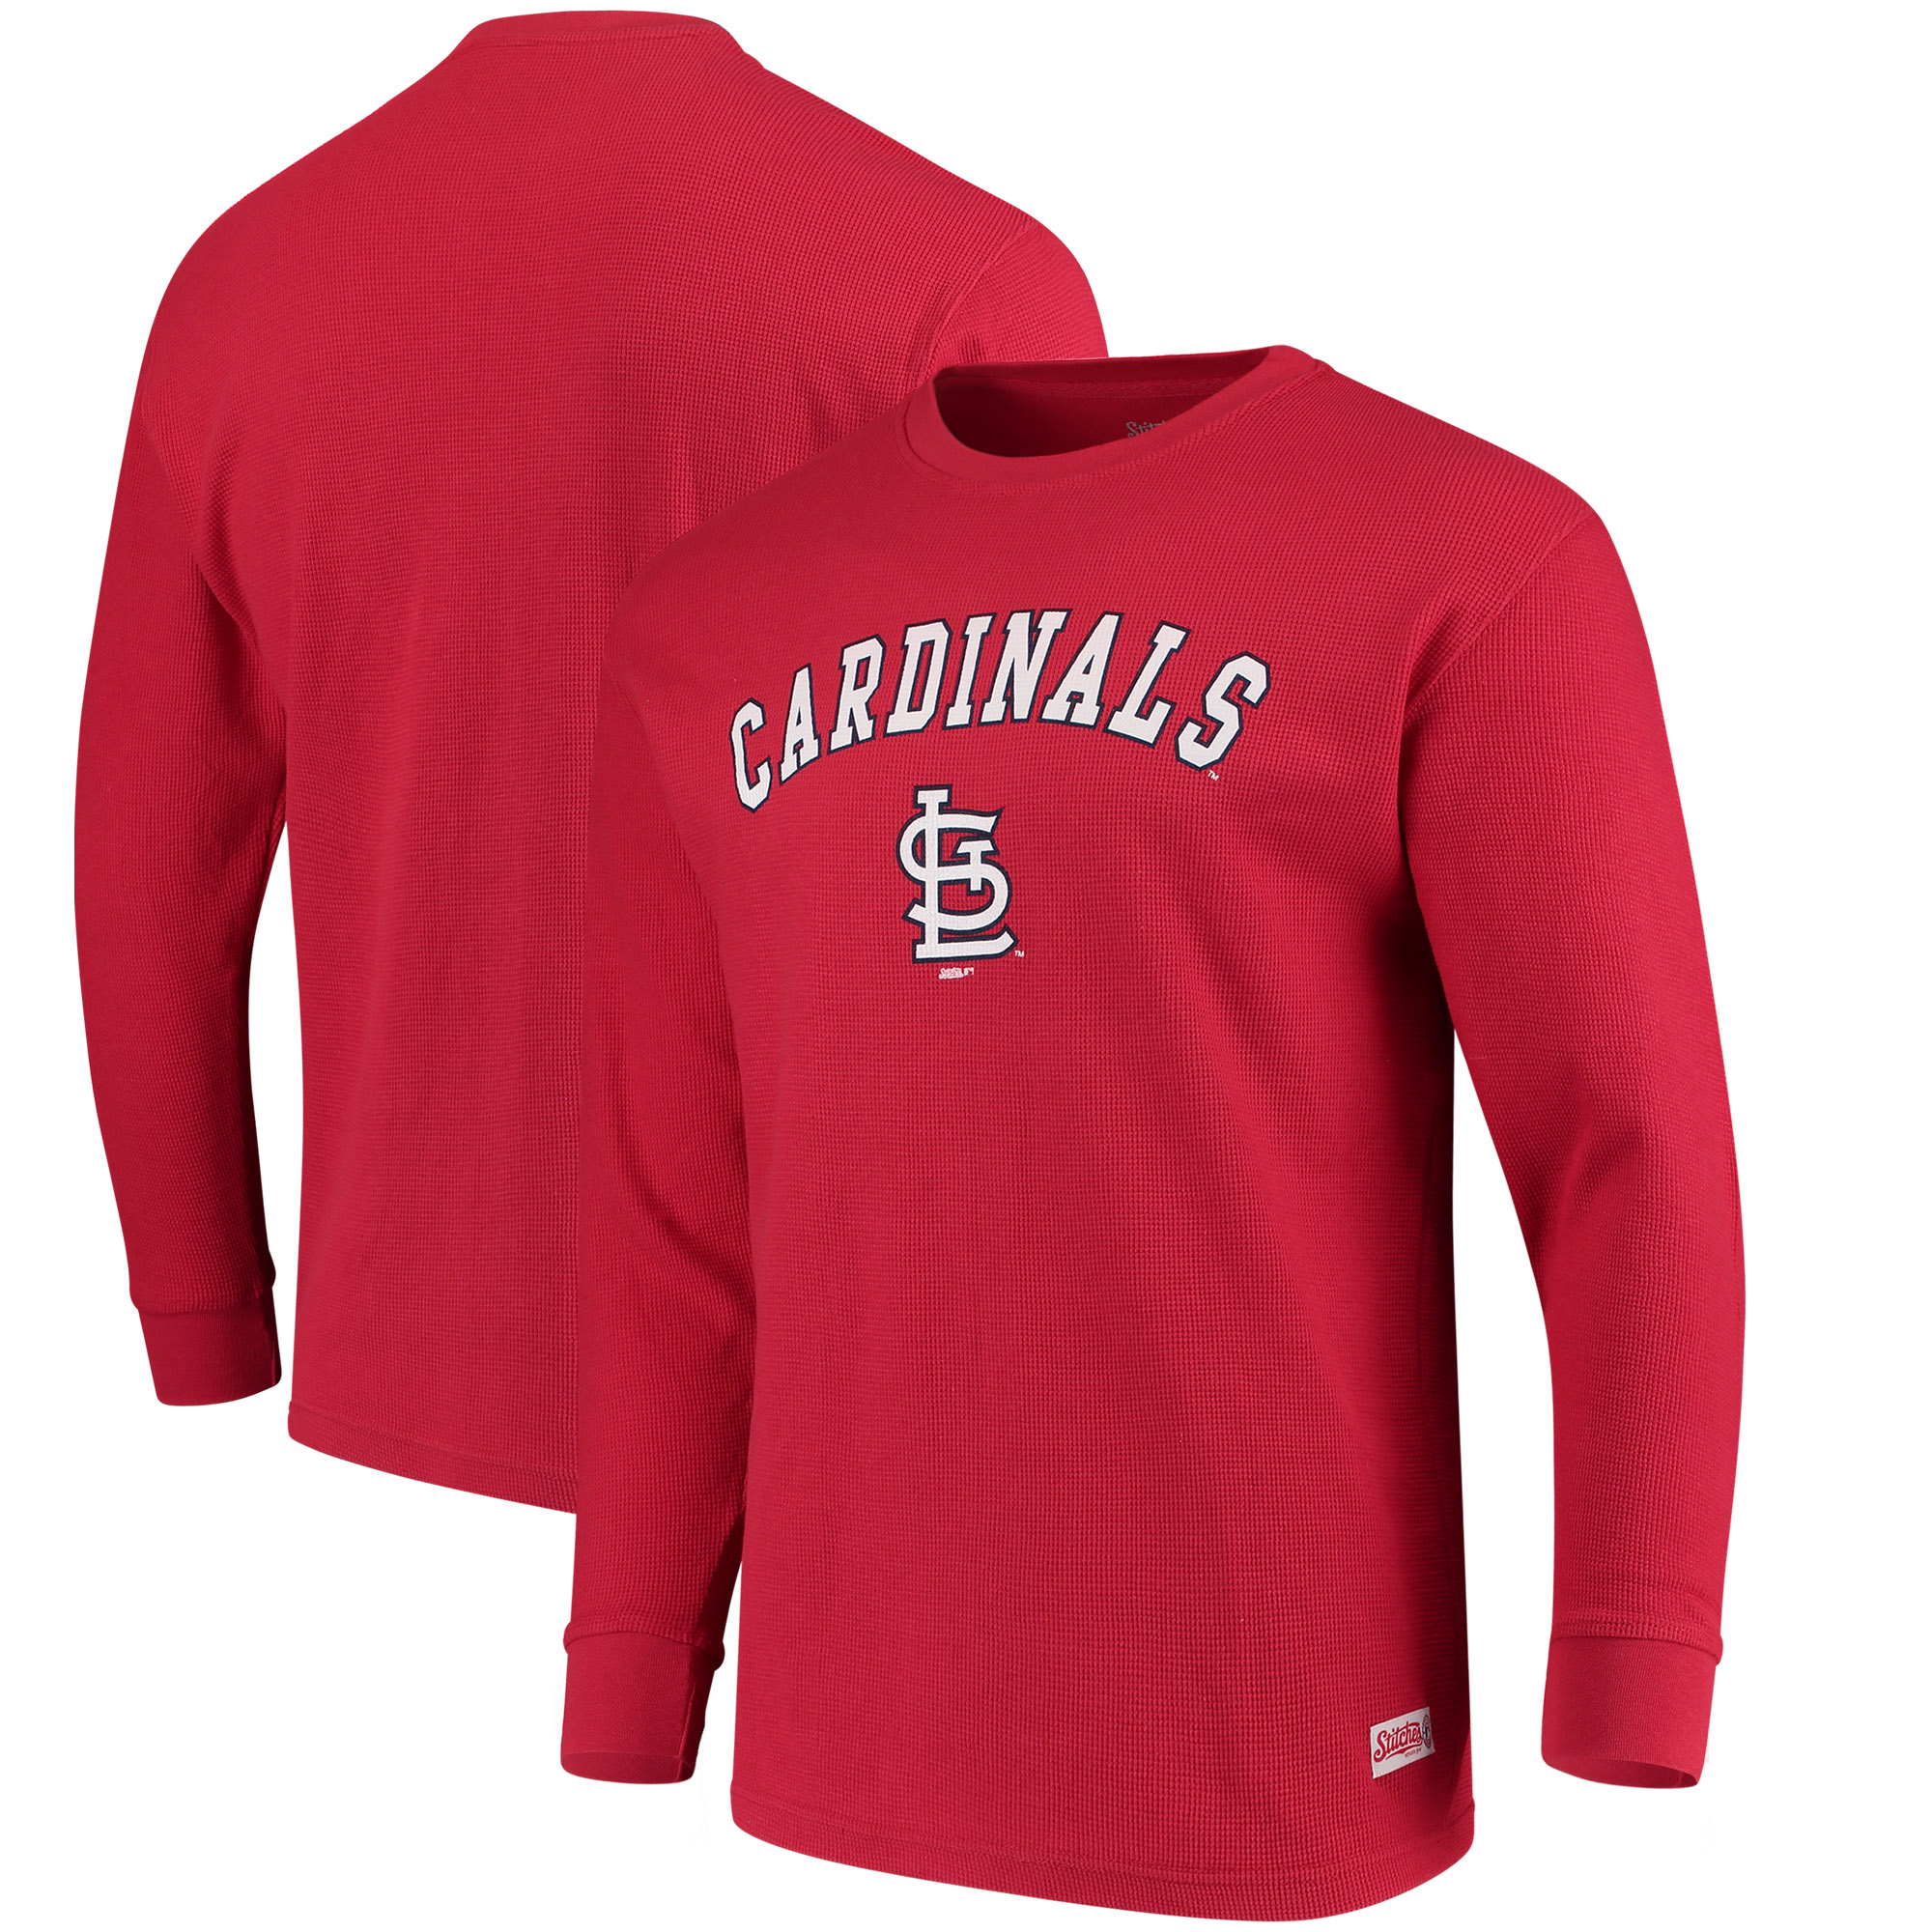 St. Louis Cardinals Stitches Long Sleeve Thermal T-Shirt - Red